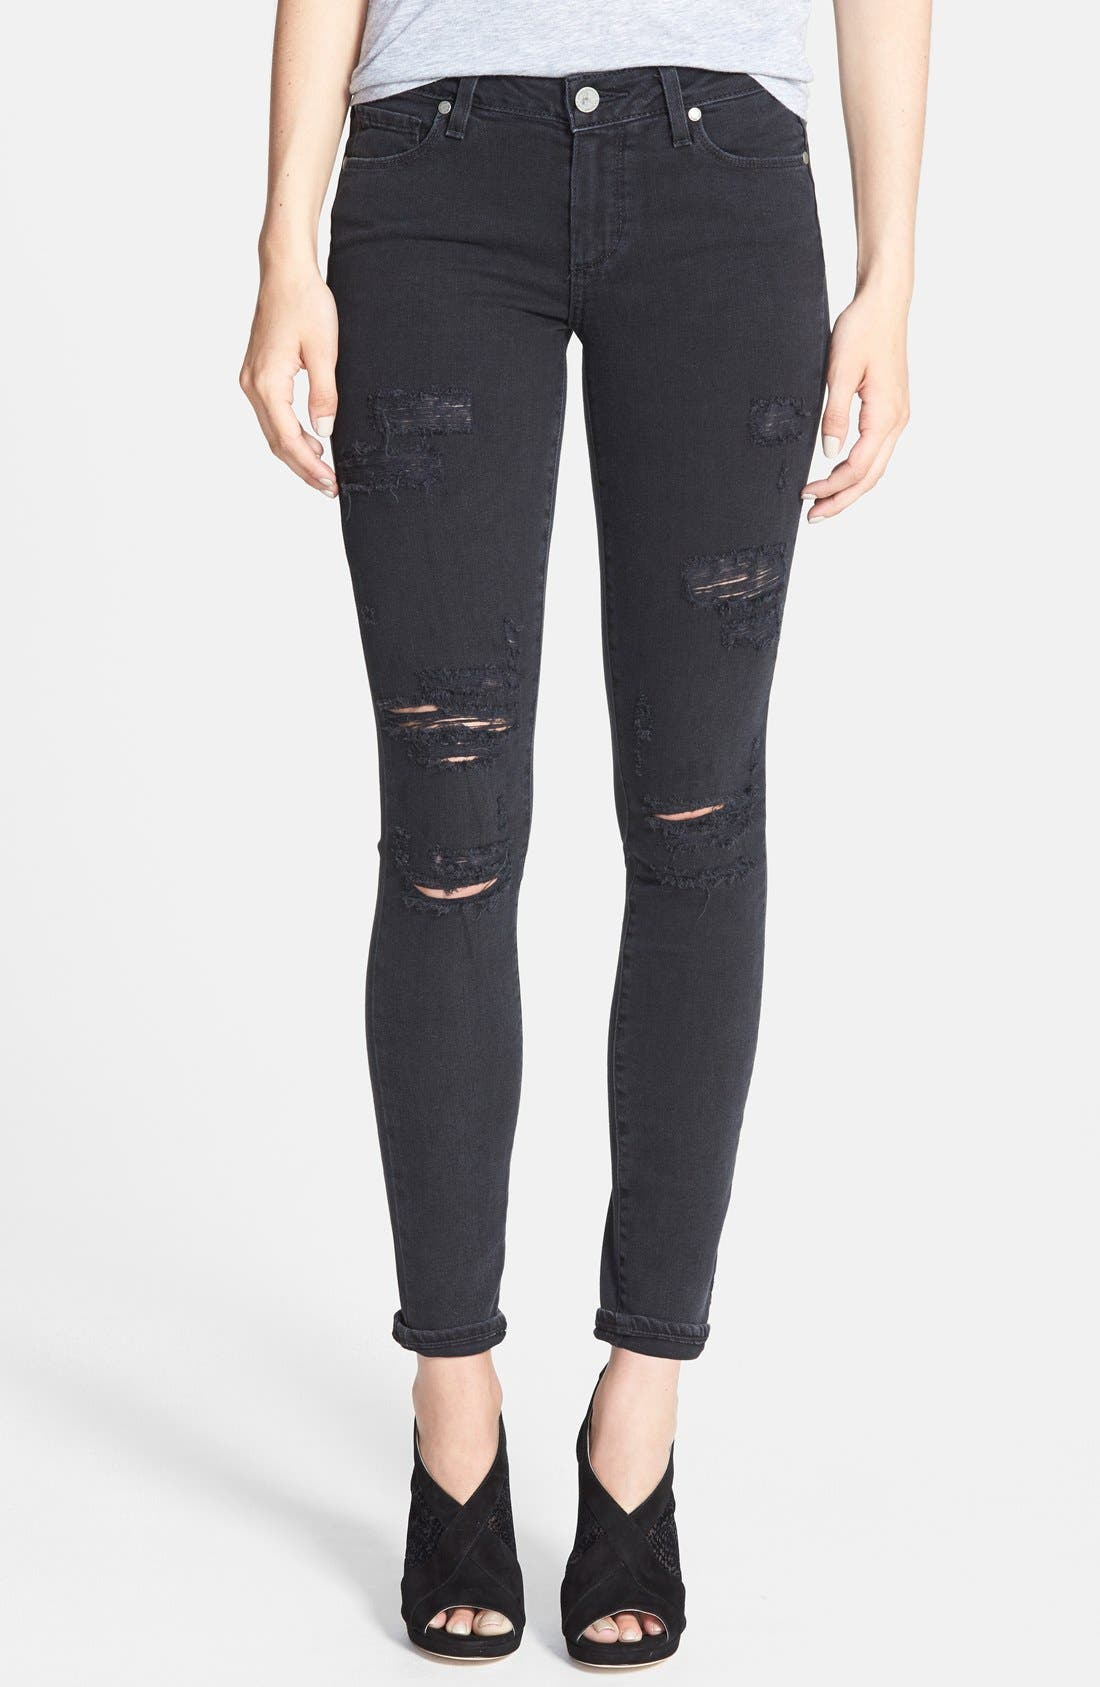 Alternate Image 1 Selected - Paige Denim 'Verdugo' Ultra Skinny Jeans (Ramone Destructed)